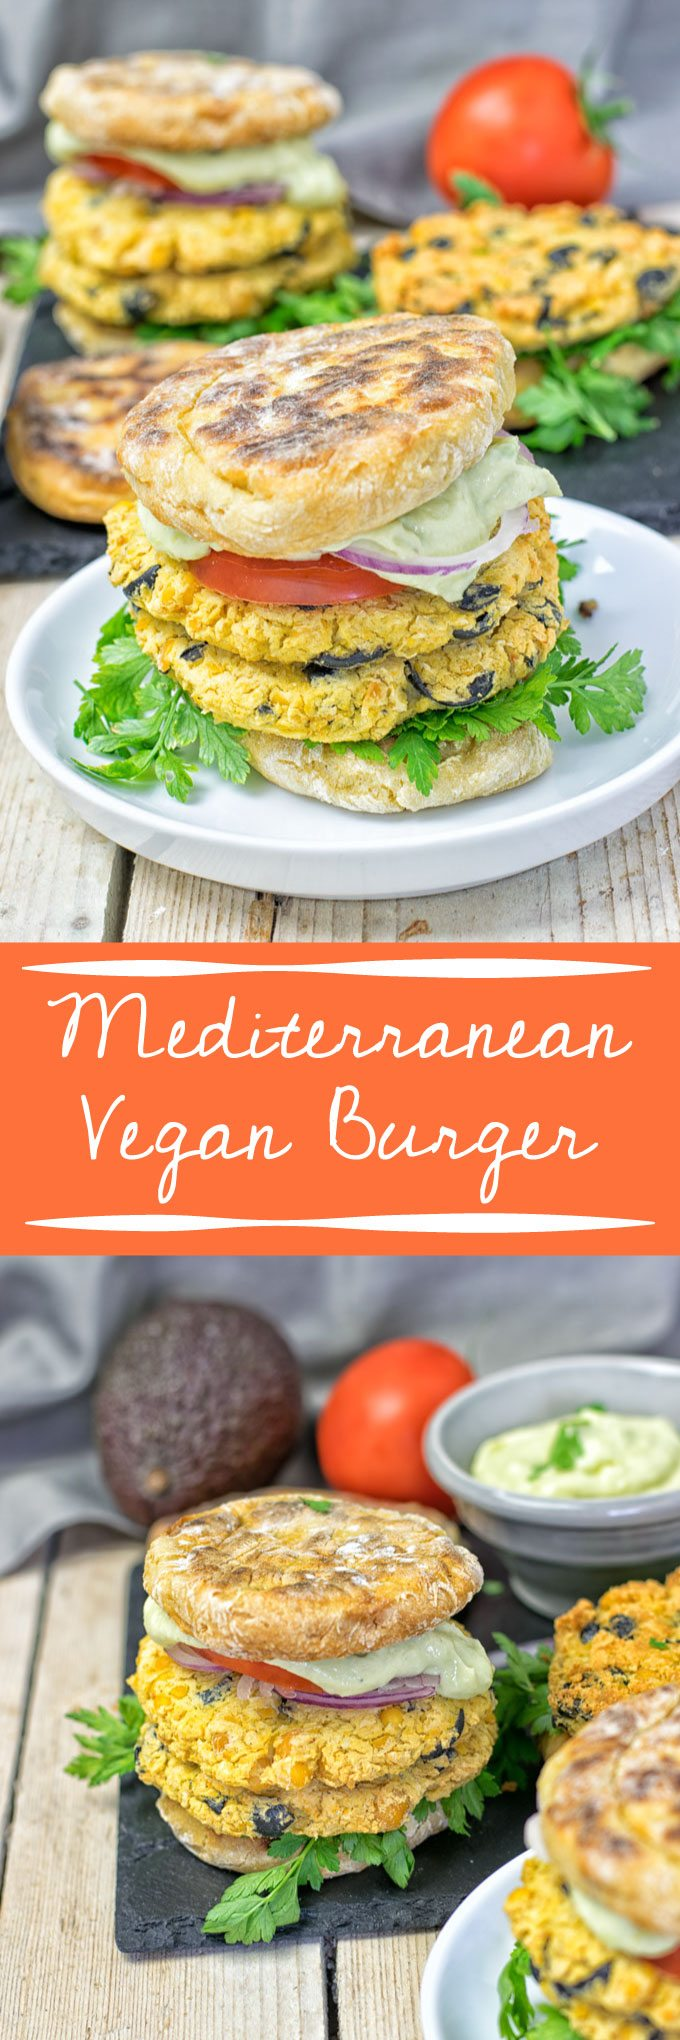 Collage of two pictures of the Mediterranean Vegan Burger with recipe title text.